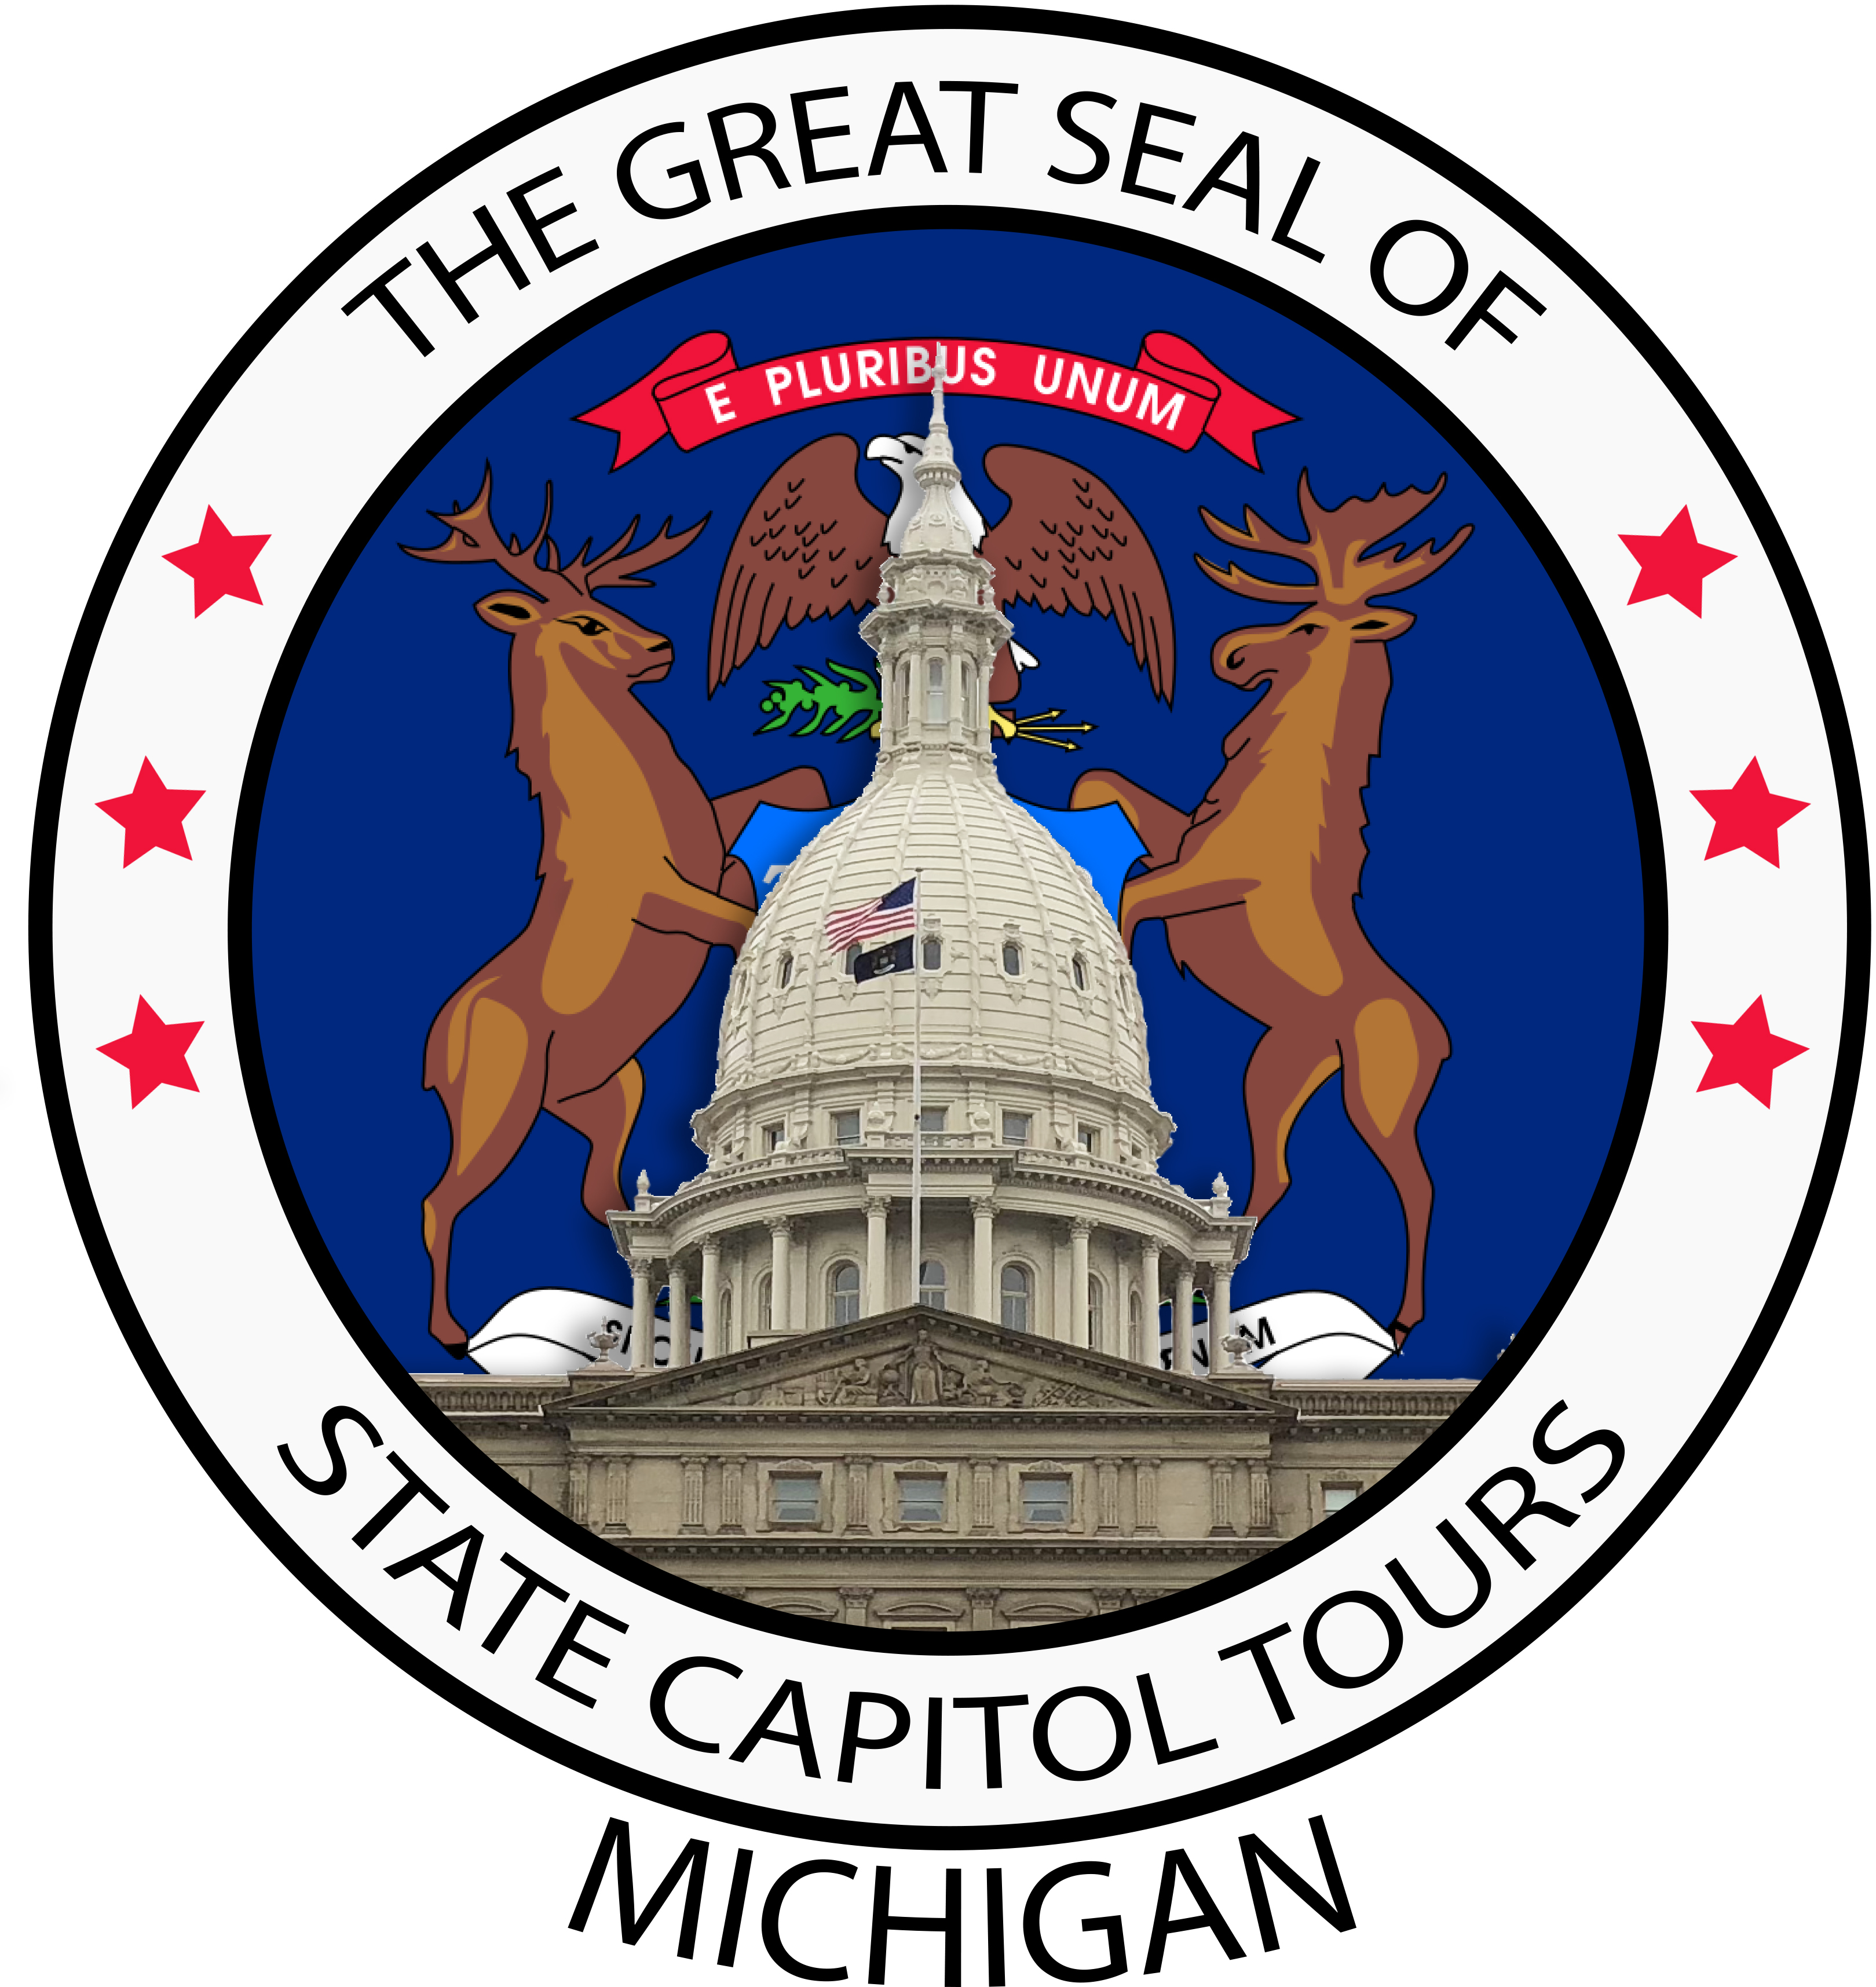 StateCapitalTours_Michigan